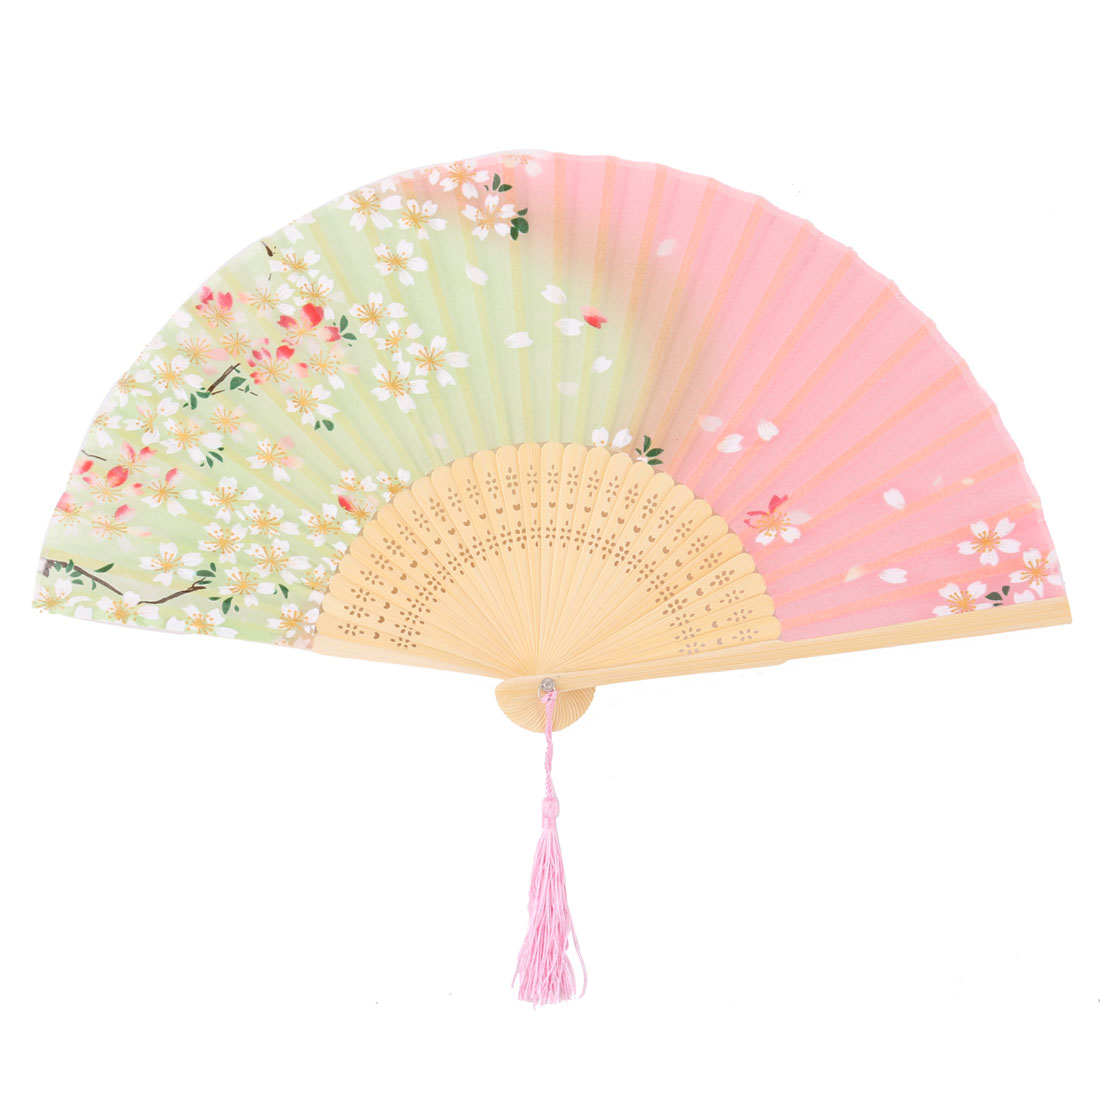 Lady Party Bamboo Frame Flower Pattern Hollow Ribs Attractive Purse Folding Fan